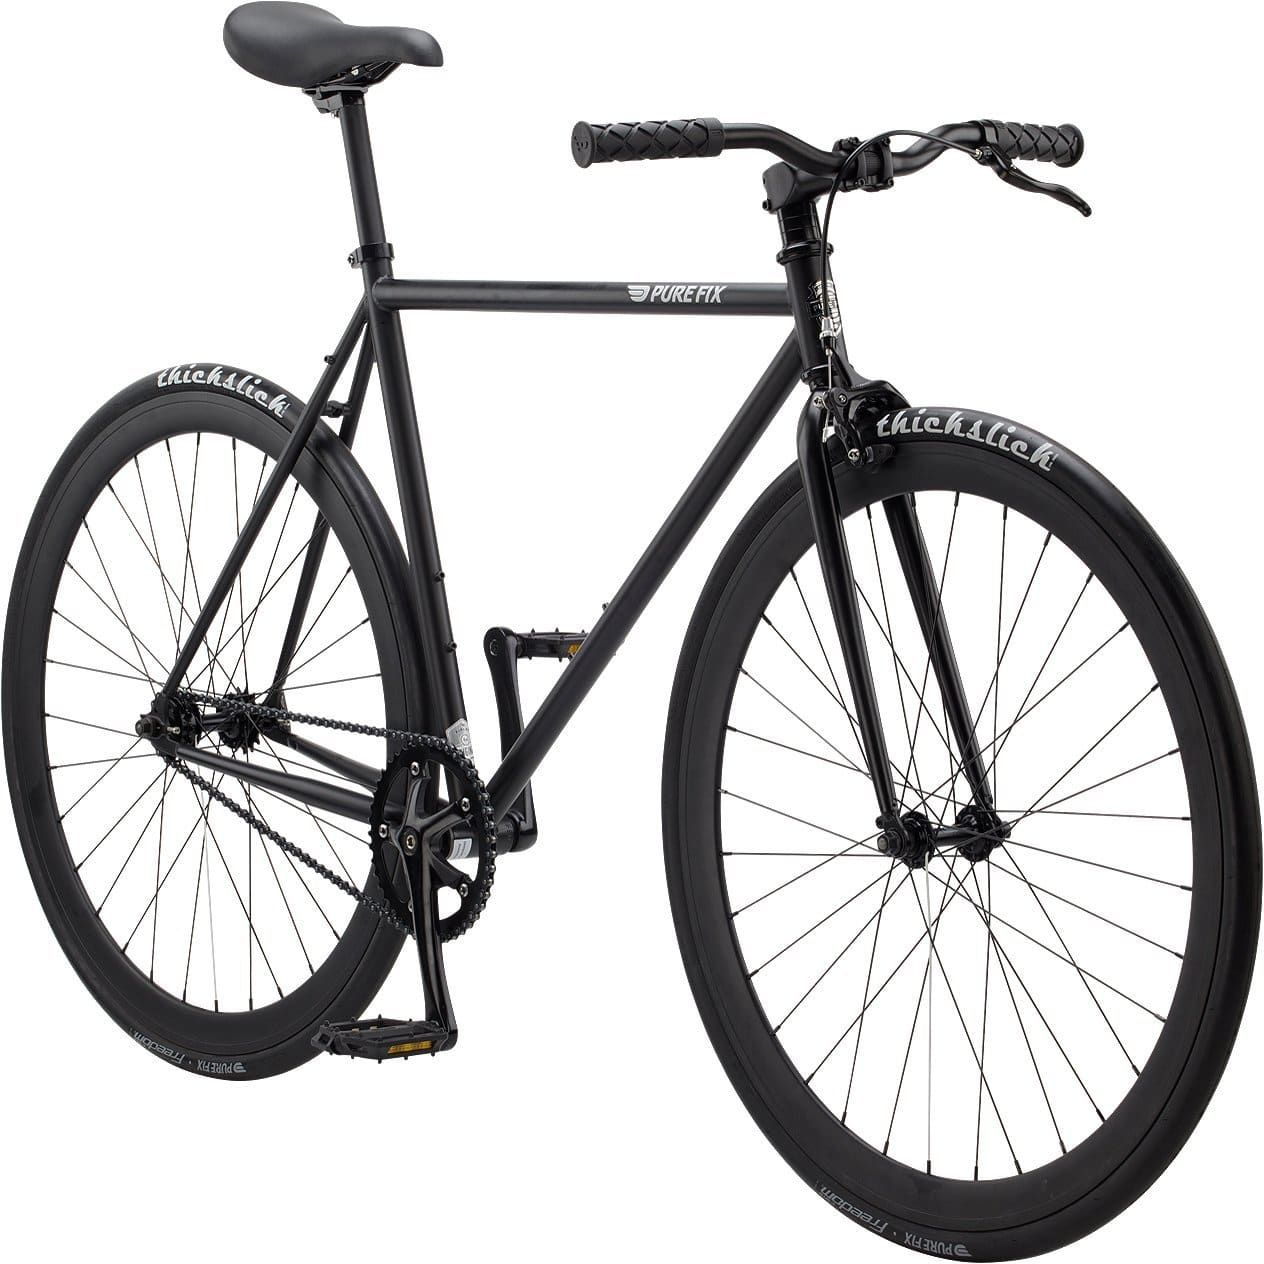 Top 10 Best Critical Cycles In 2020 Reviews With Images Single